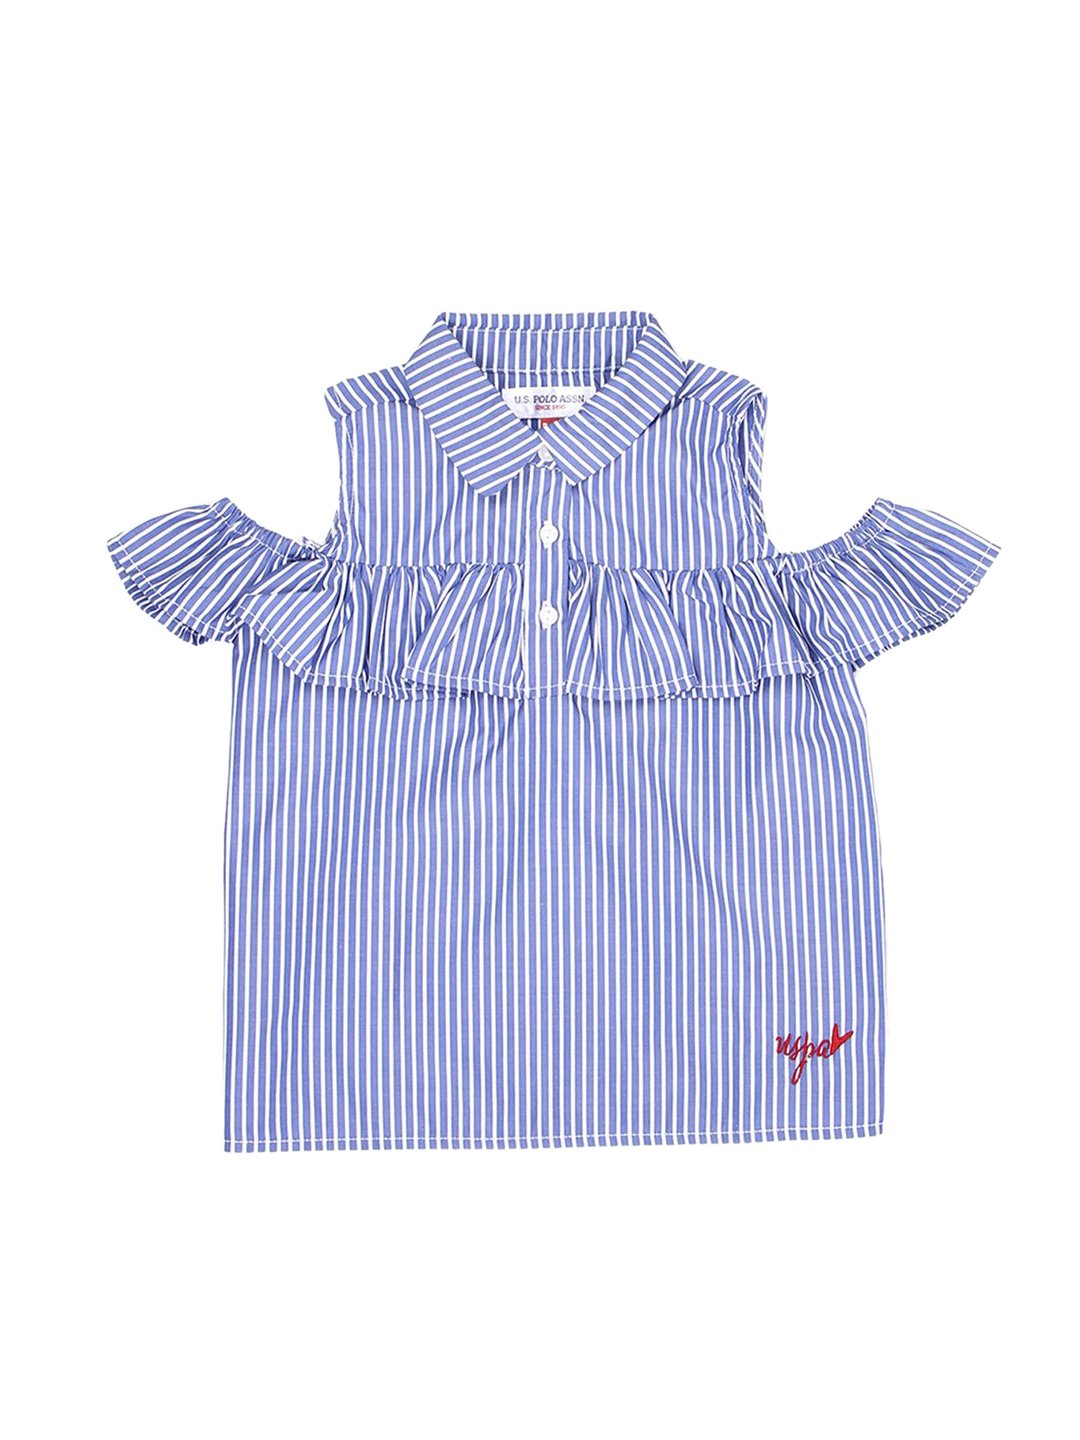 US Polo Assn Baby Girls Fashion Top and Childrens Apparel U.S